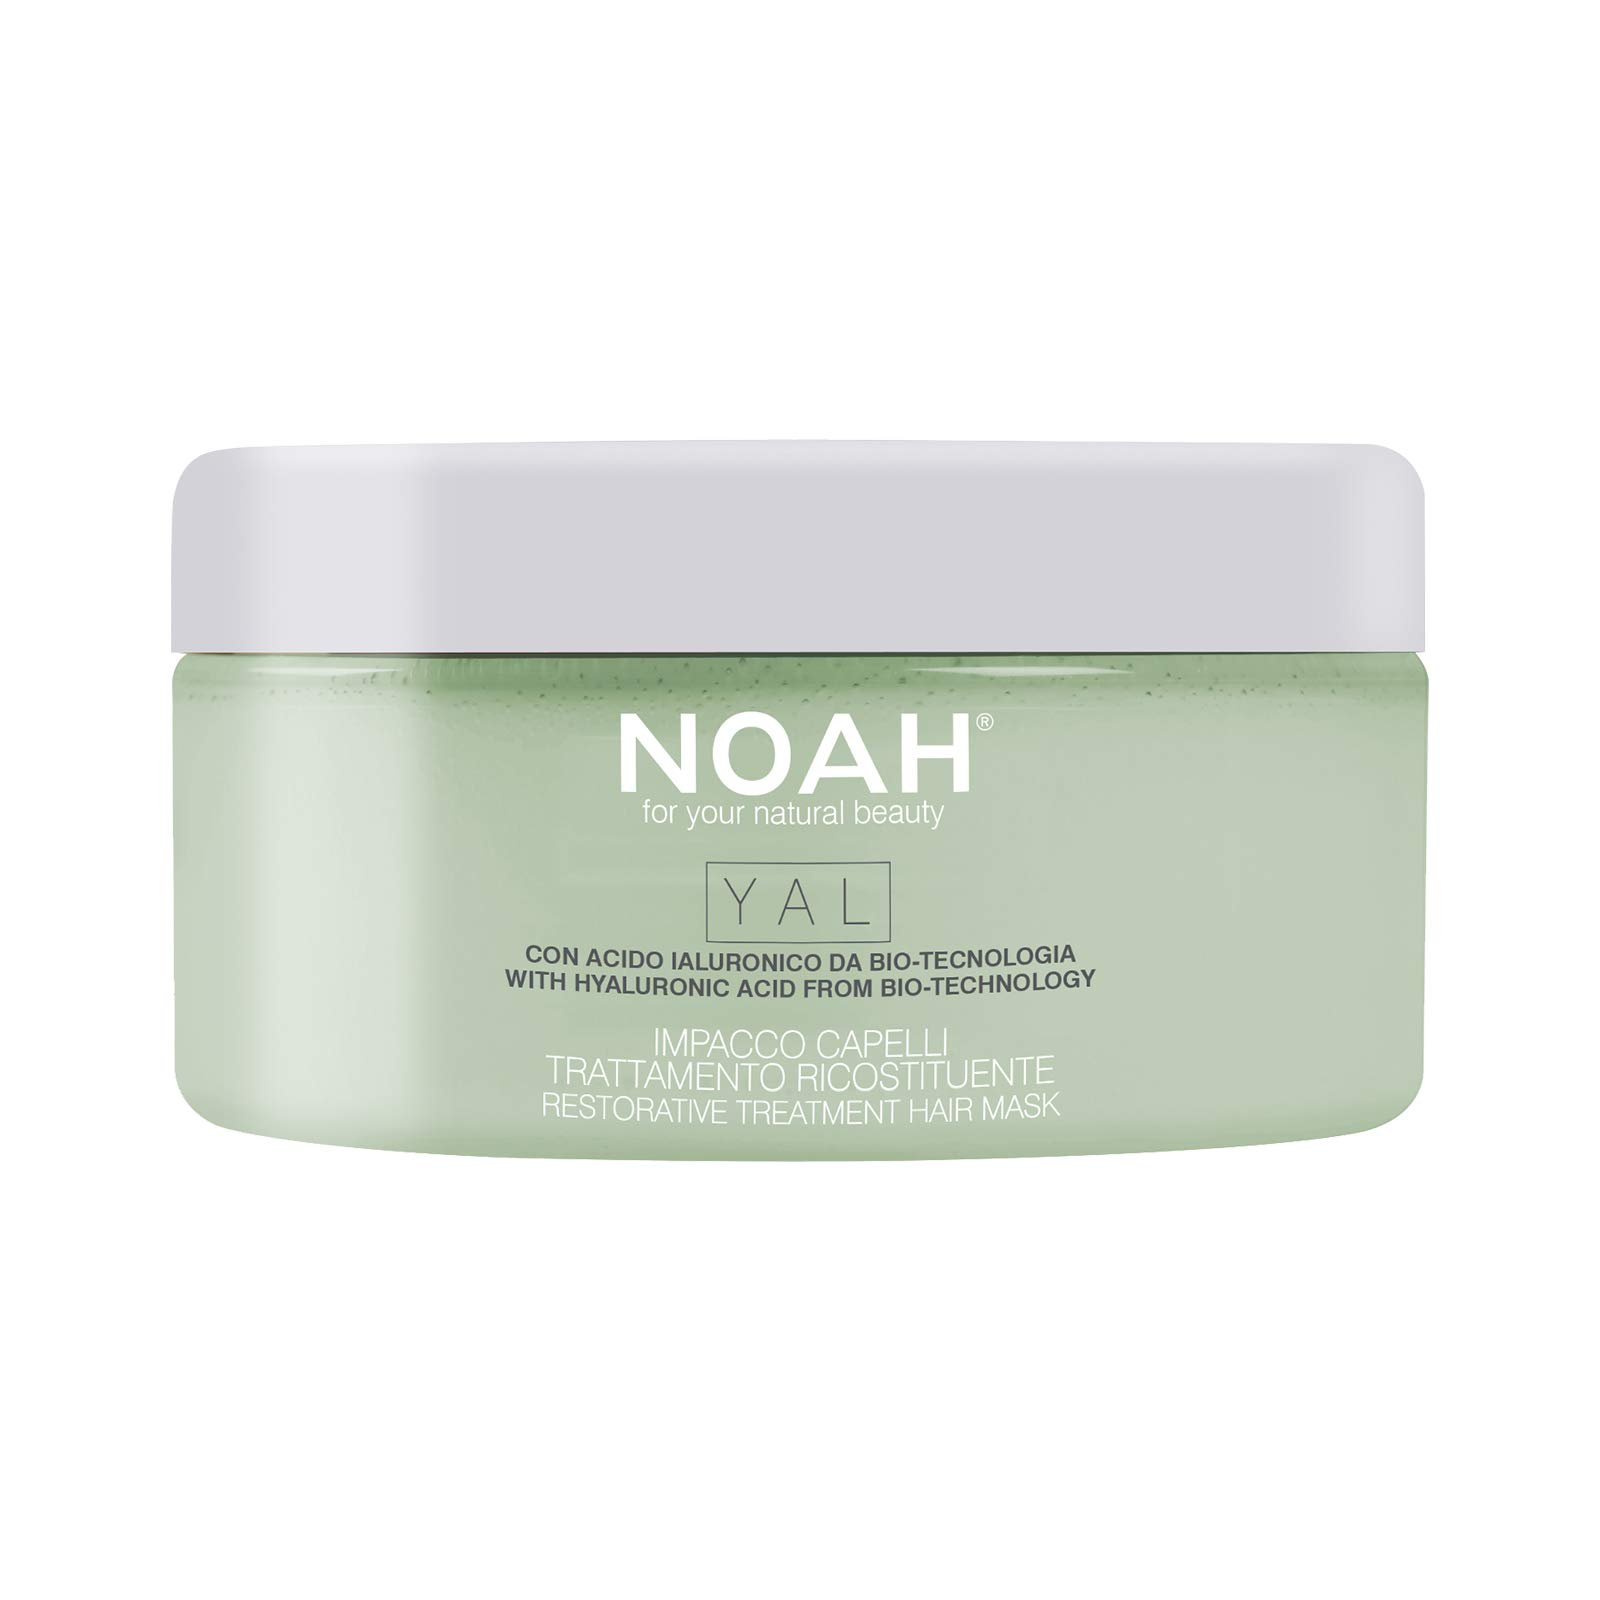 NOAH YAL Restore Hair Mask with Hyaluronic Acid for Hair - Hydrating, Anti Aging, Repairing Hair Mask and Hair Moisturizer, Coconut Avocado Hair Mask Sulphate Free - 6.76 fl.oz, Avocado Oil